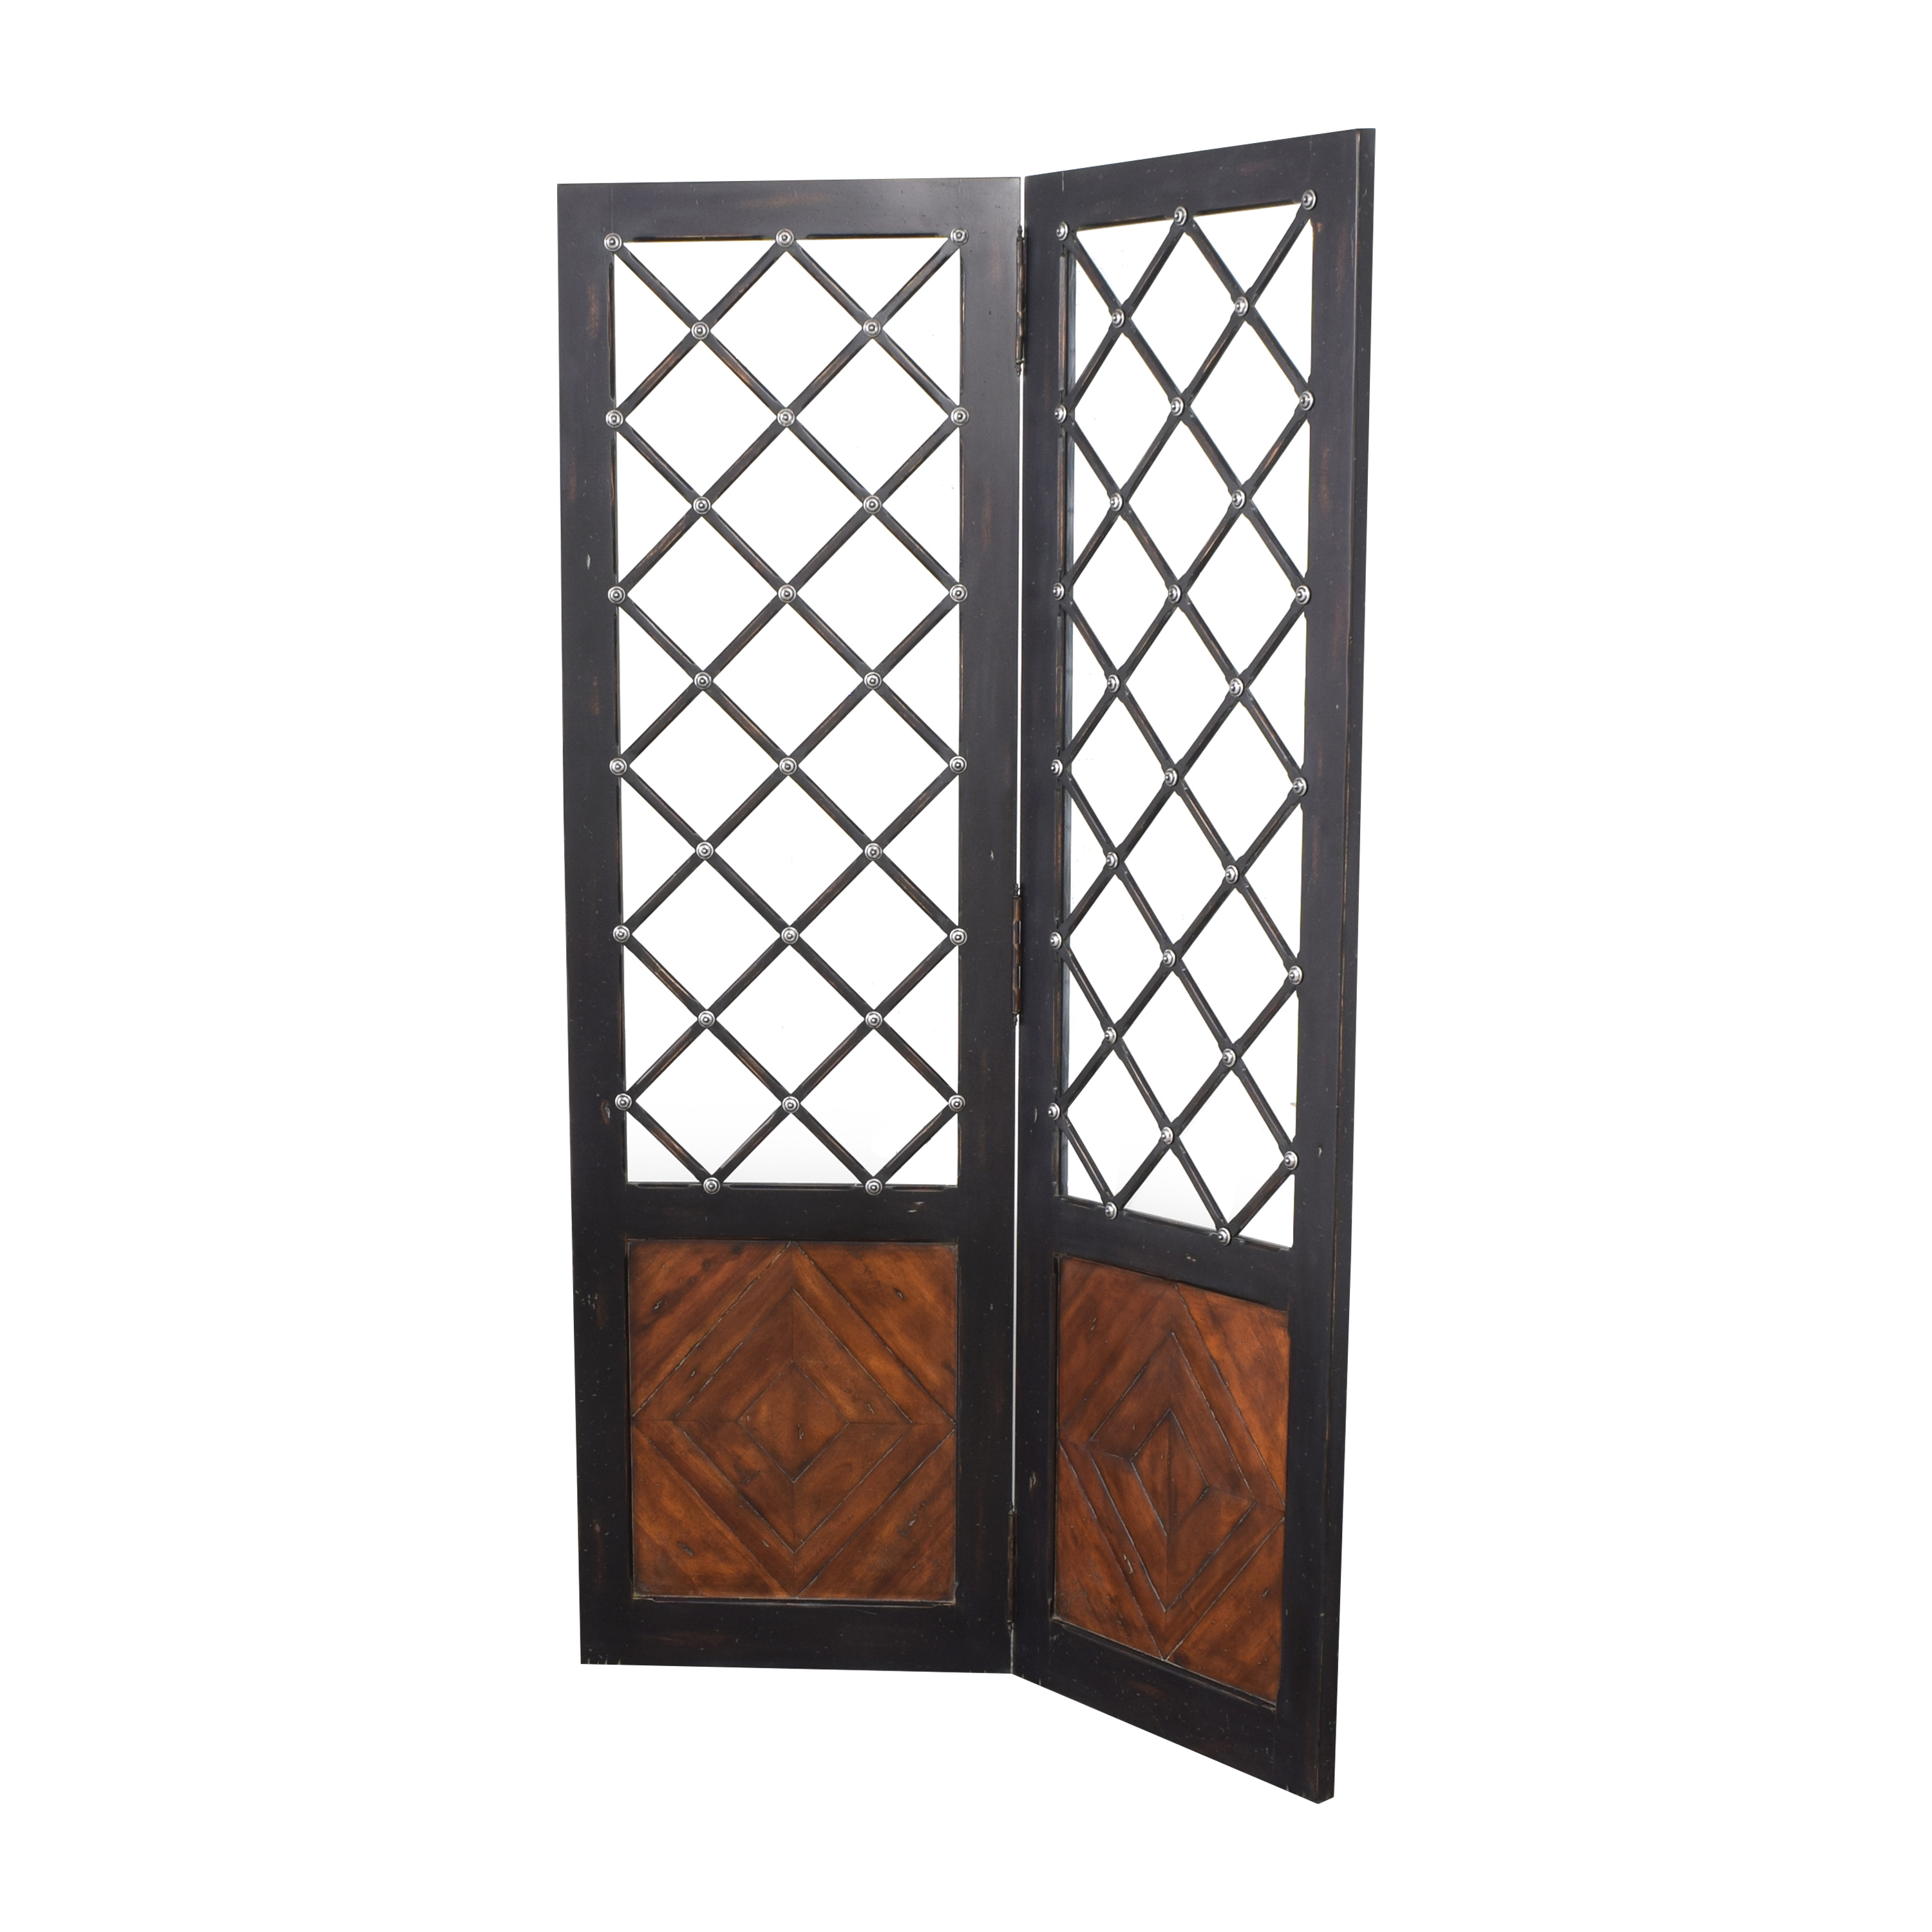 Bombay Company Bombay Company Decorative Folding Screen nyc